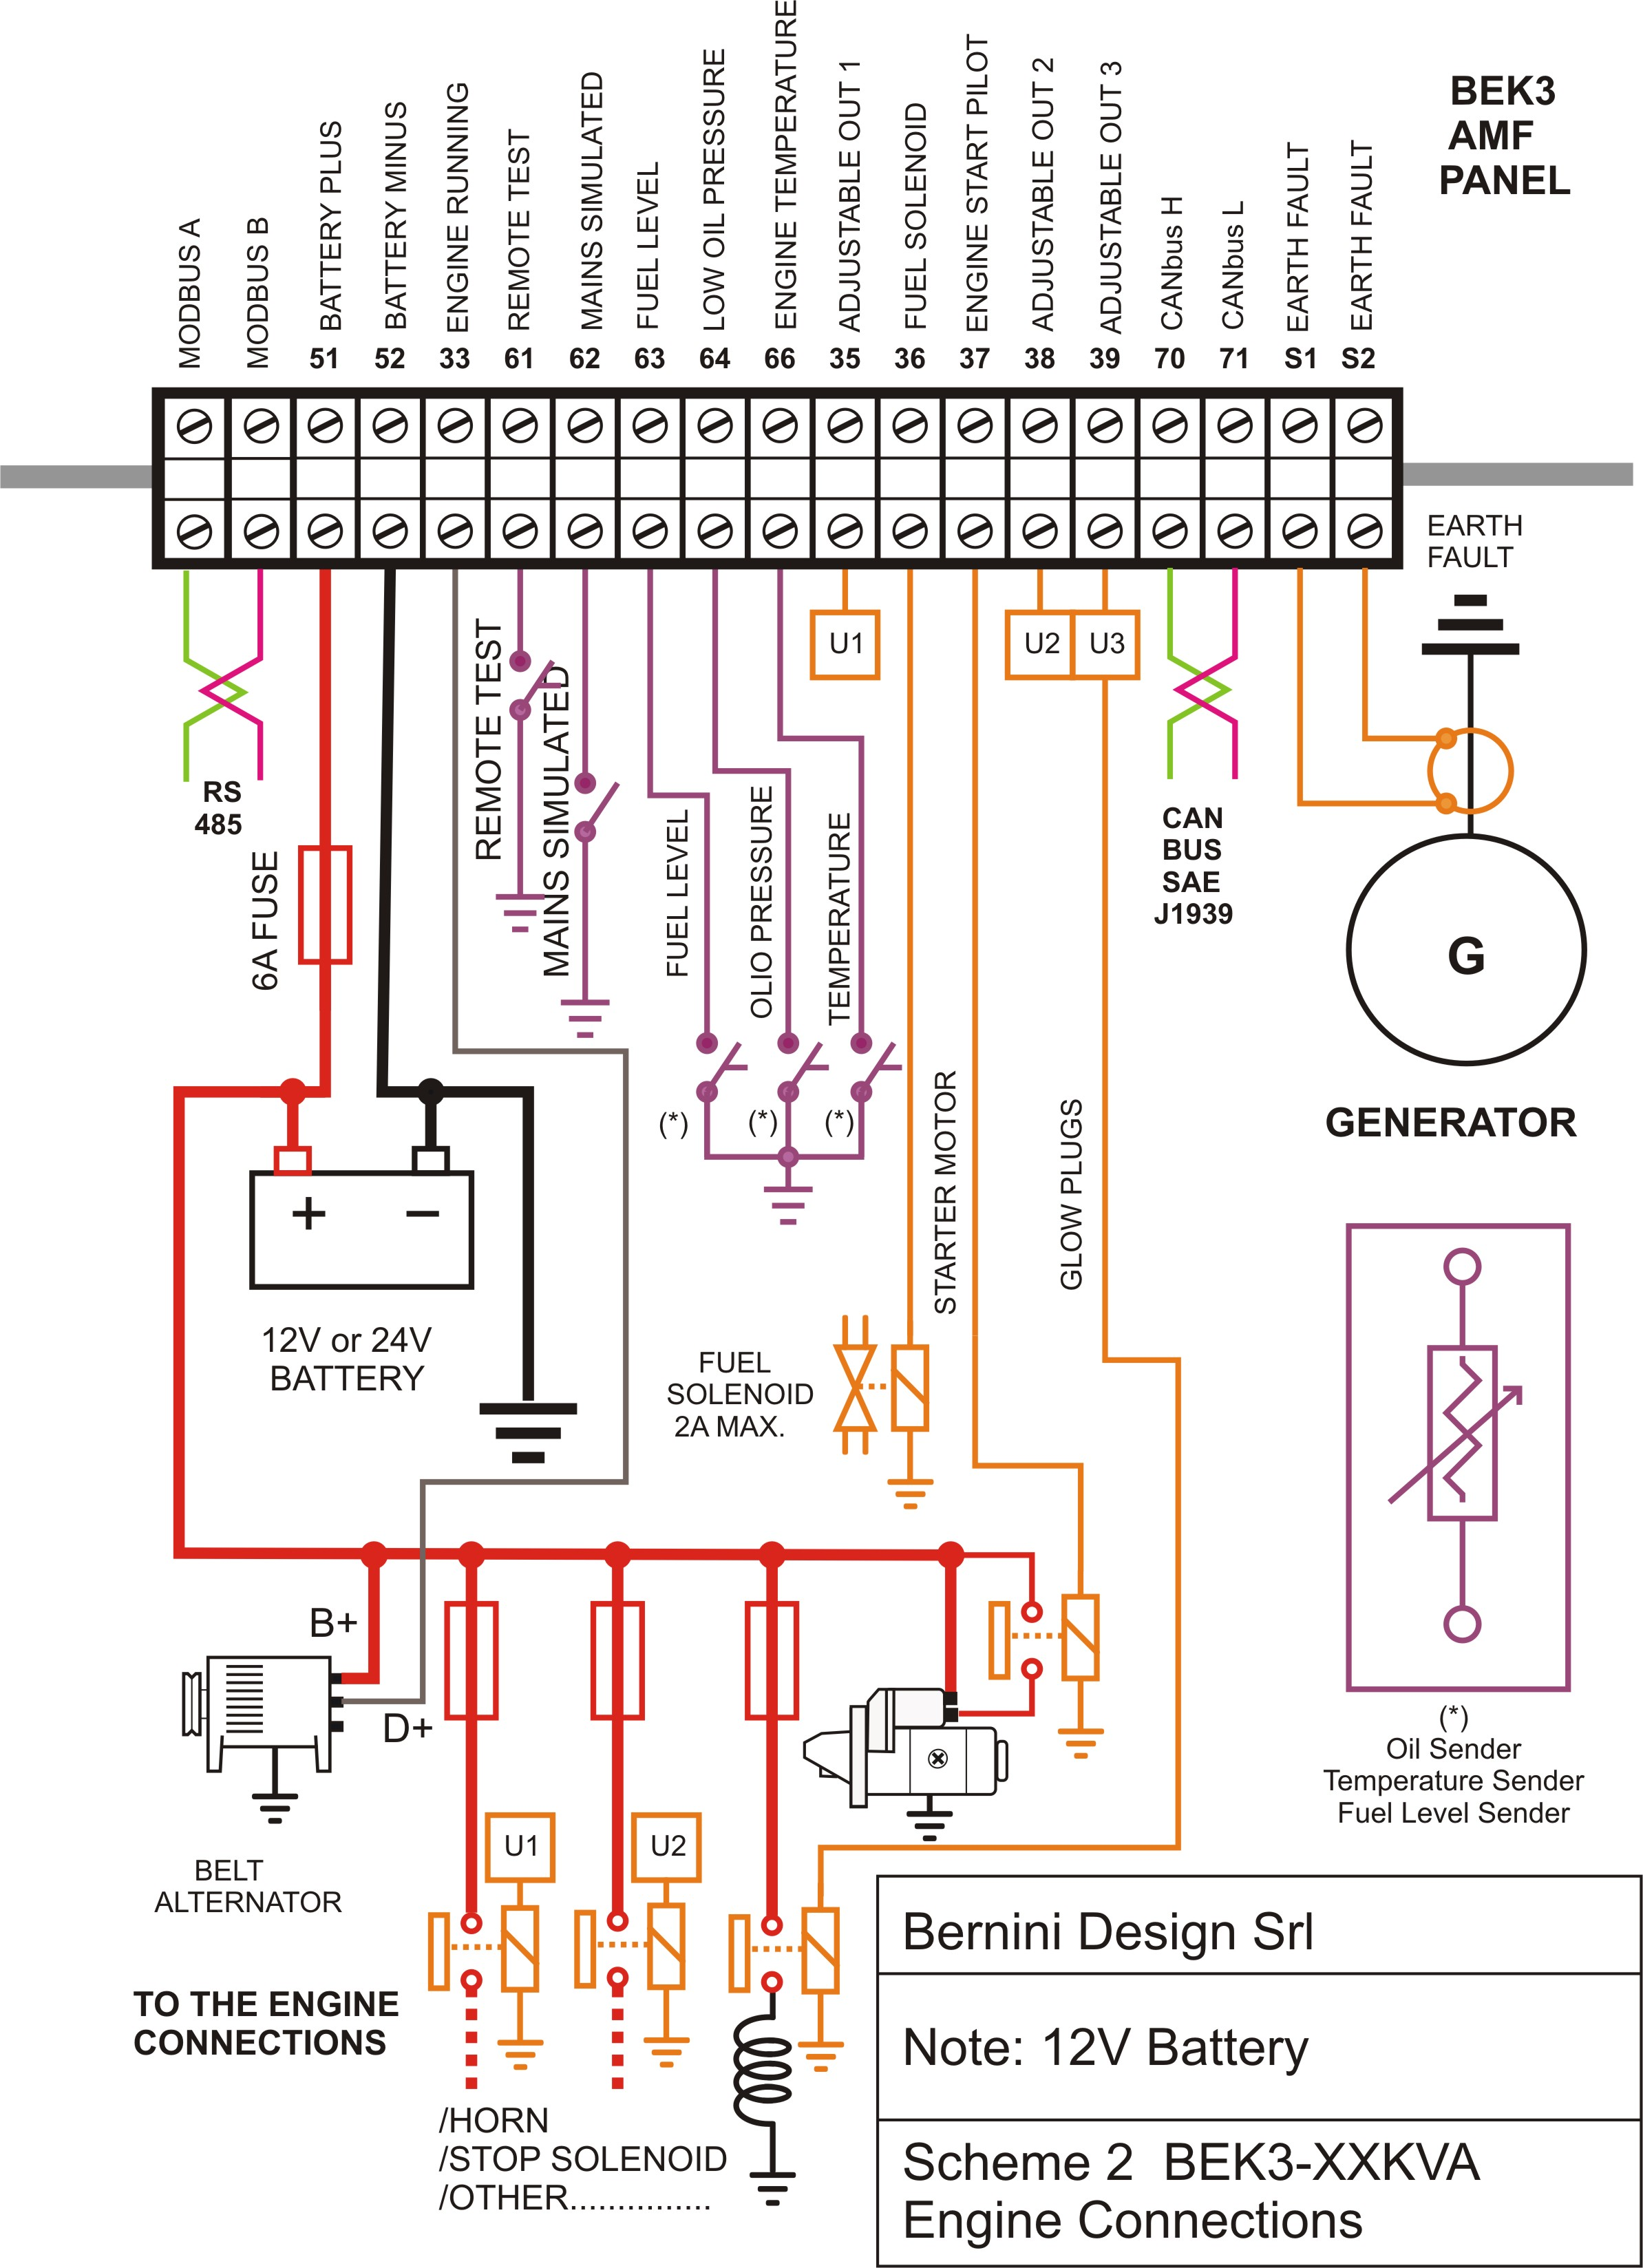 Diesel Generator Control Panel Wiring Diagram Engine Connections wiring diagrams maker readingrat net wire diagram motor guide 784 at alyssarenee.co